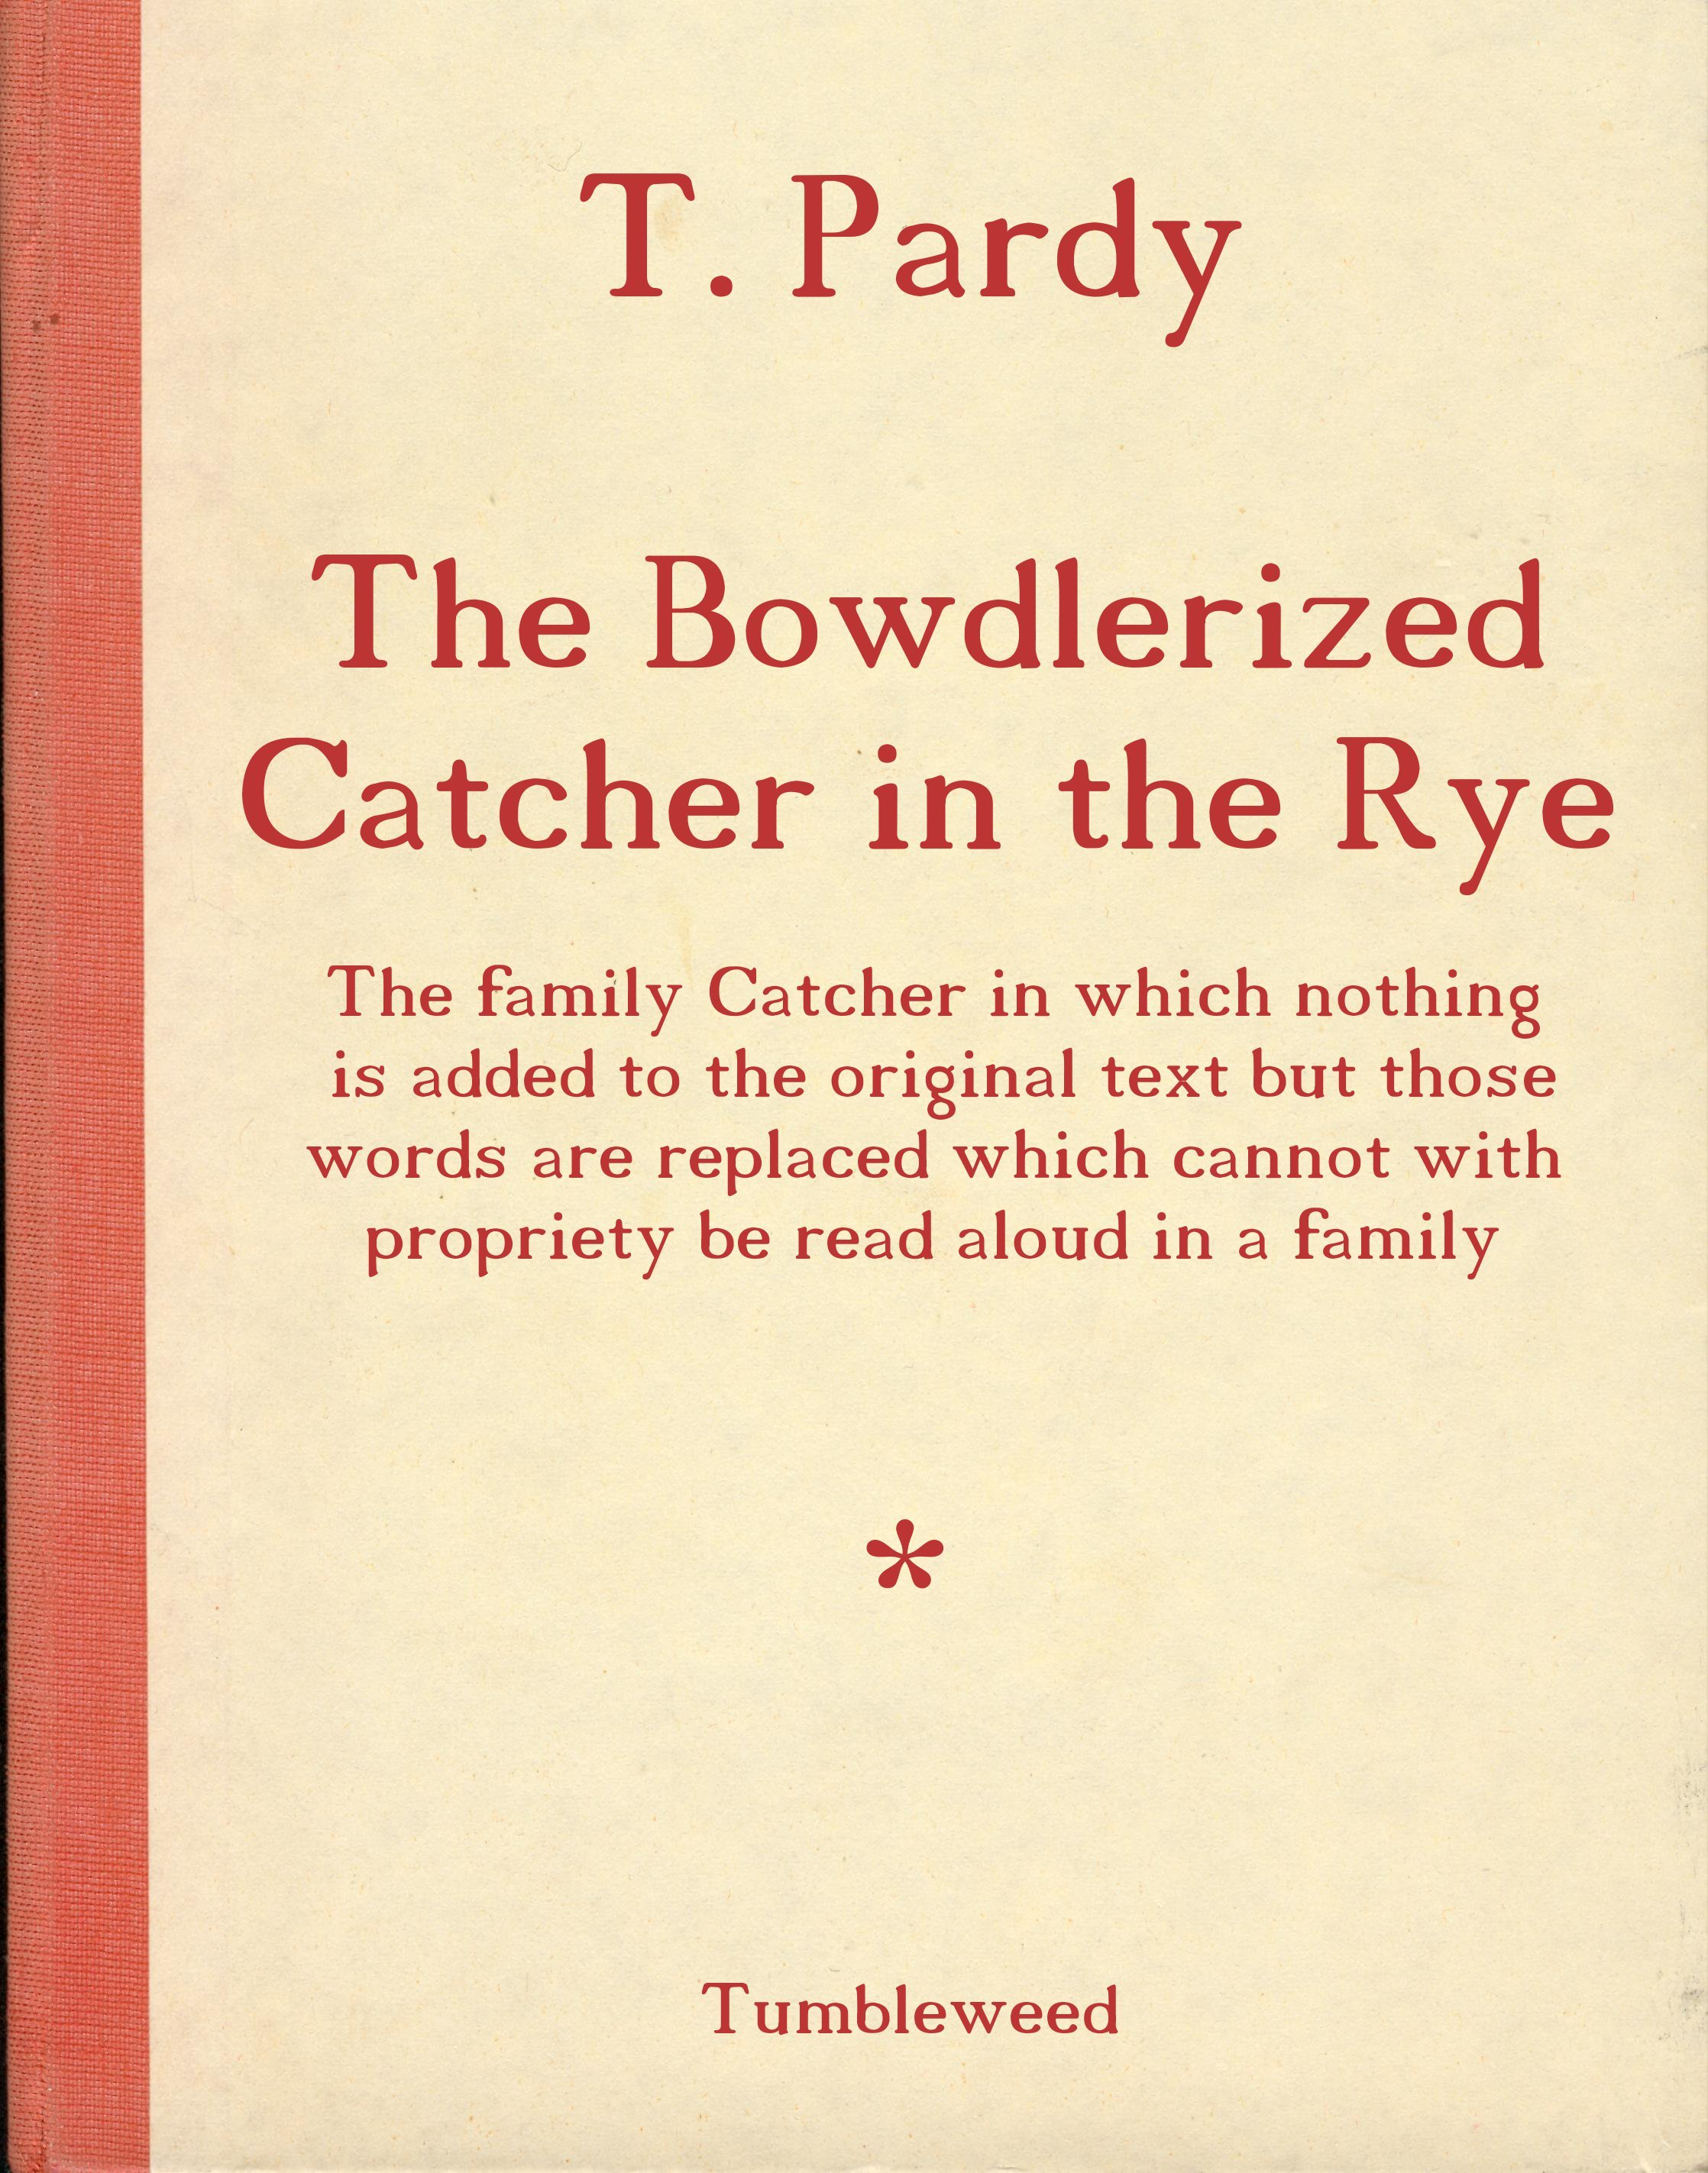 the catcher in the rye phony quotes quotesgram